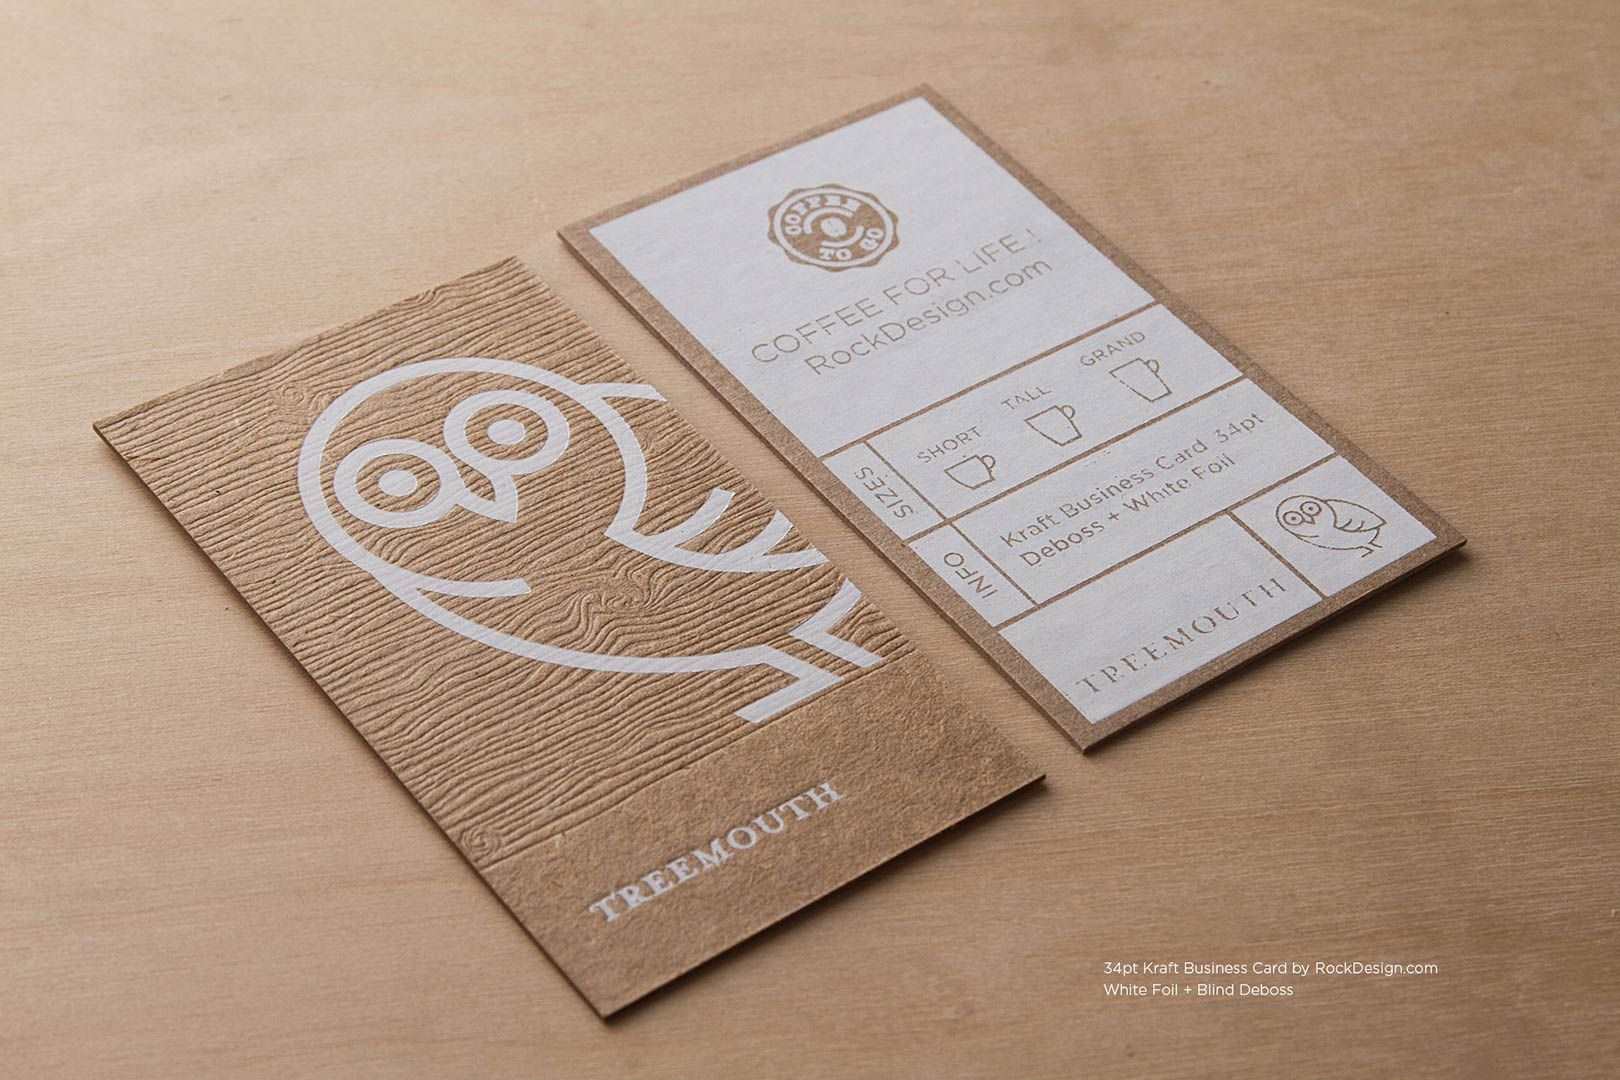 Brown kraft business cards rockdesign design branding and order or creative brown kraft business cards today select your preferred print finishing such as embossing deboss letterpress offset printing magicingreecefo Image collections